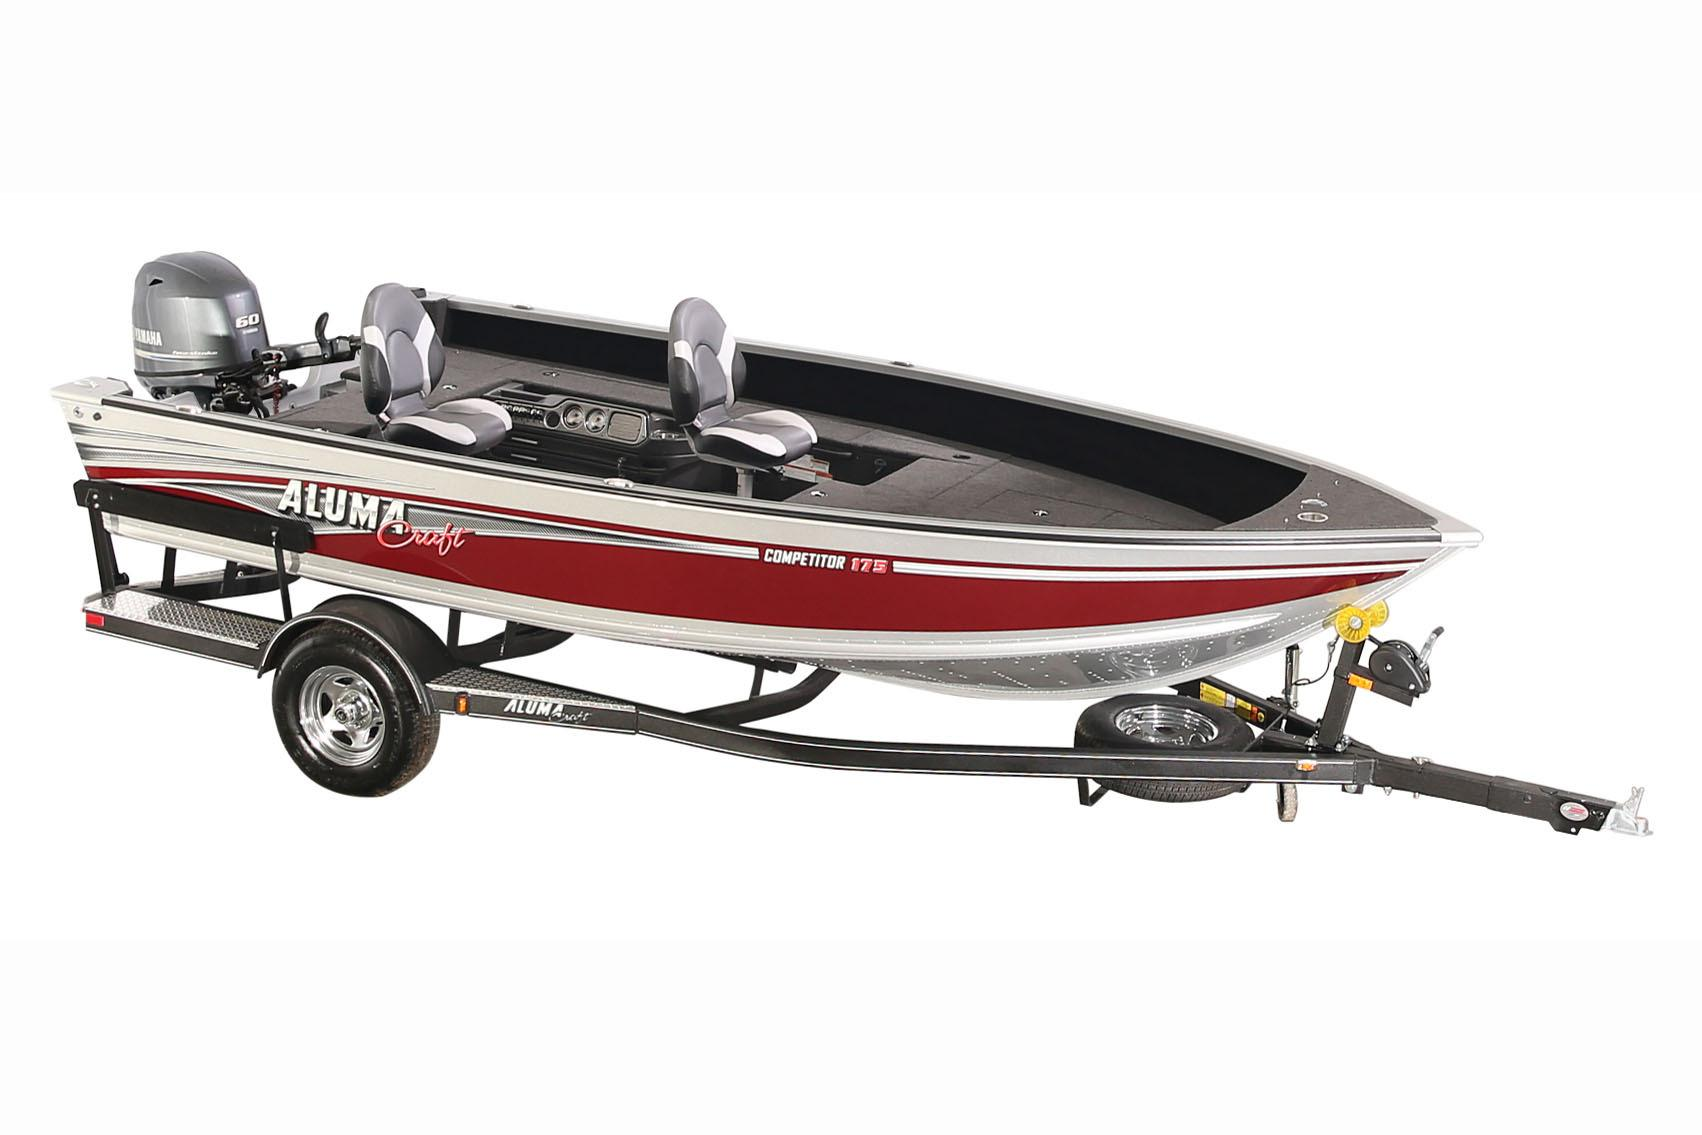 2018 Alumacraft Competitor 175 Tiller in Black River Falls, Wisconsin